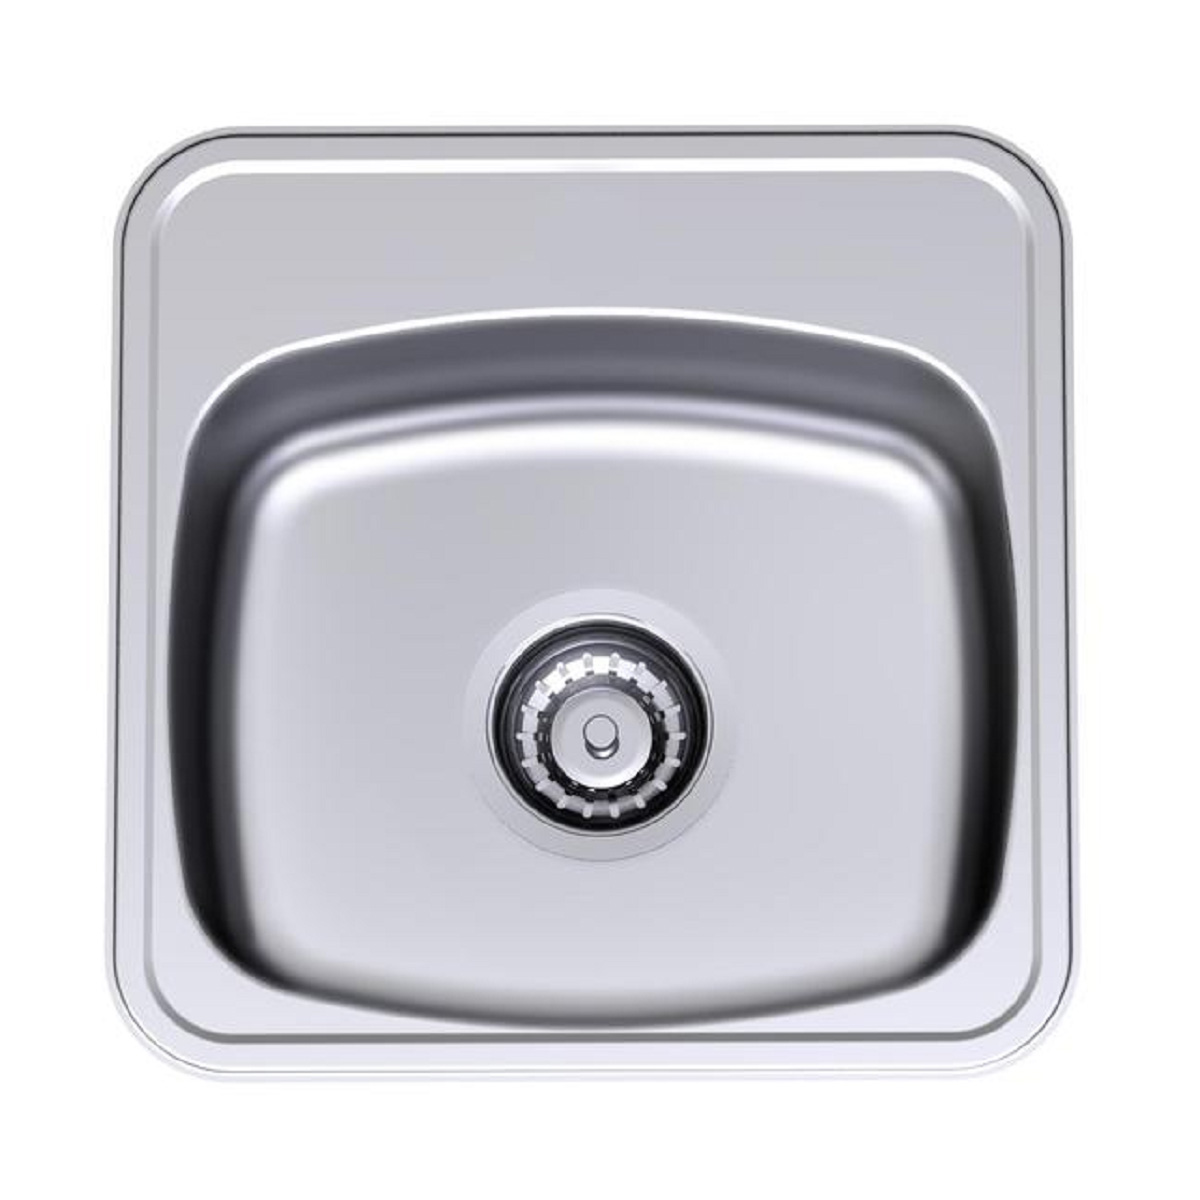 Clark 4004-1 Bar Sink with Tap Landing 1TH